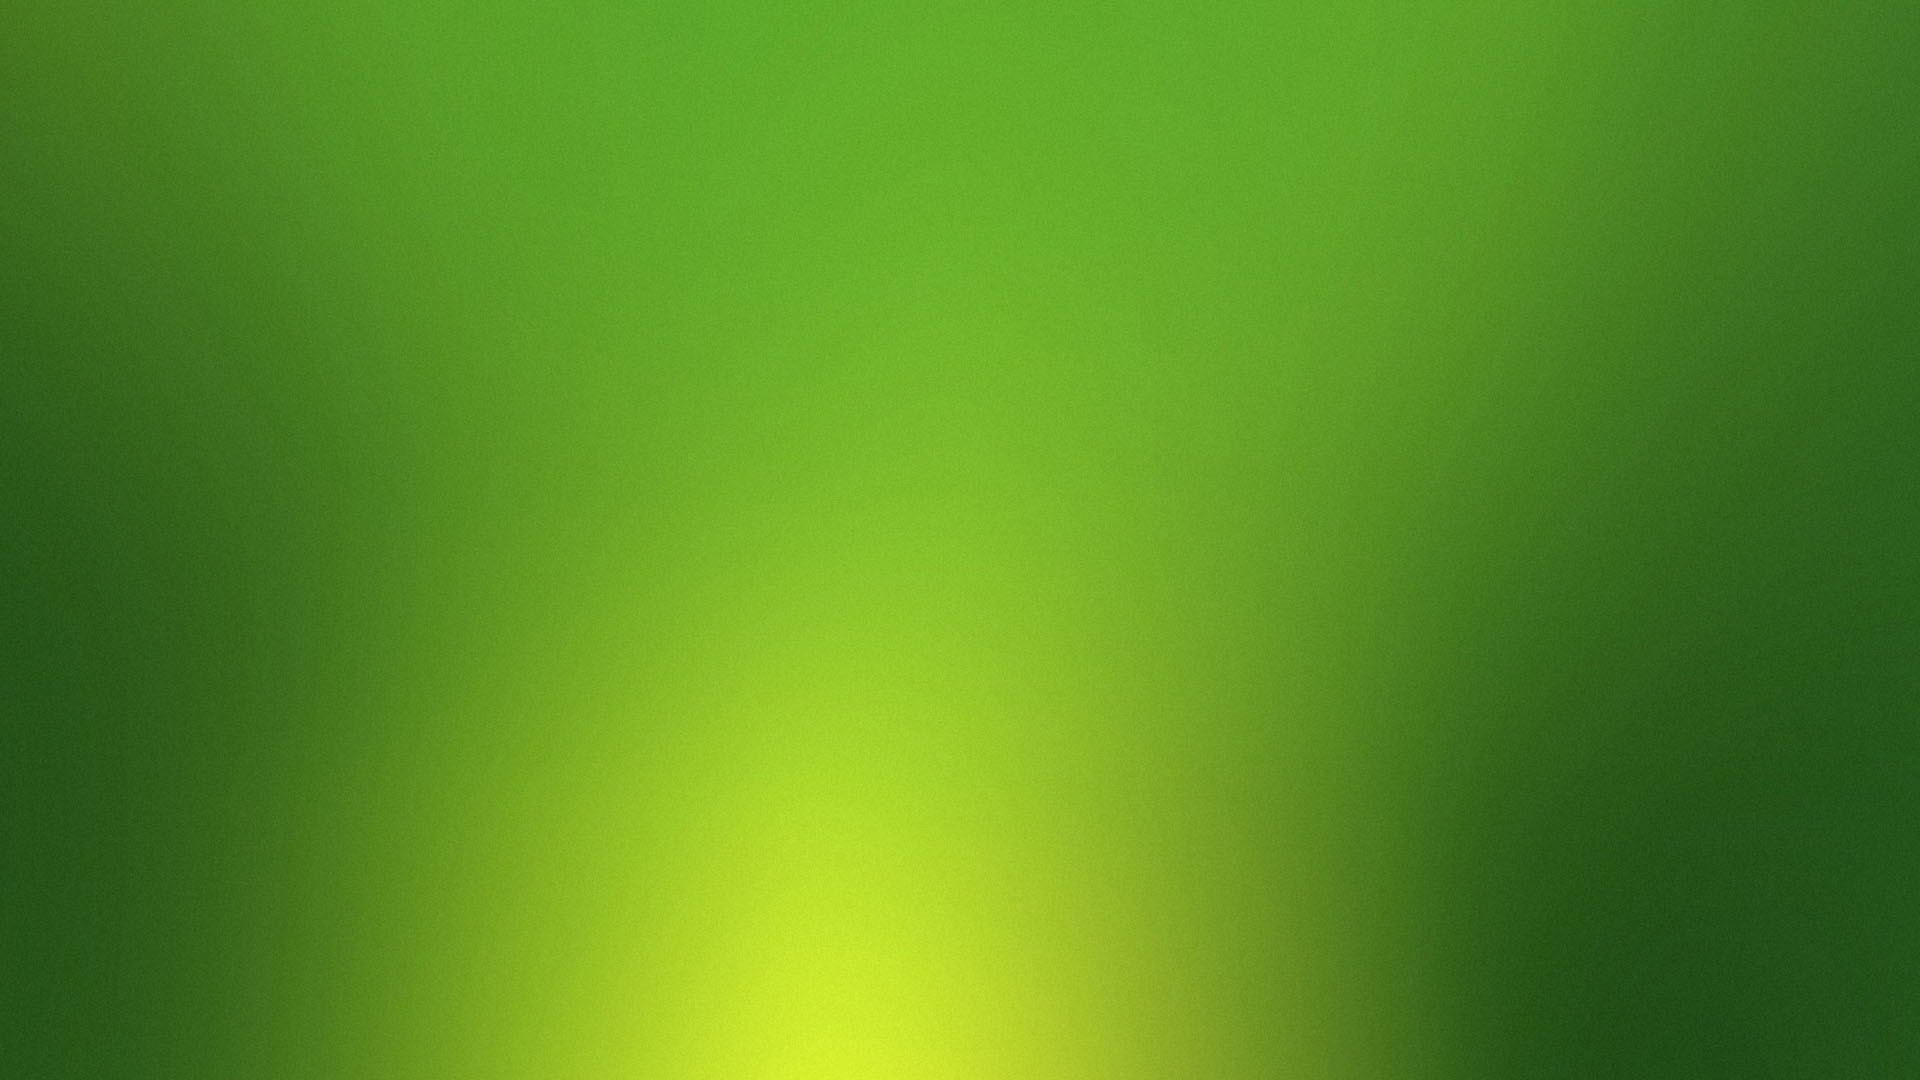 1920x1080 Plain Green Backgrounds